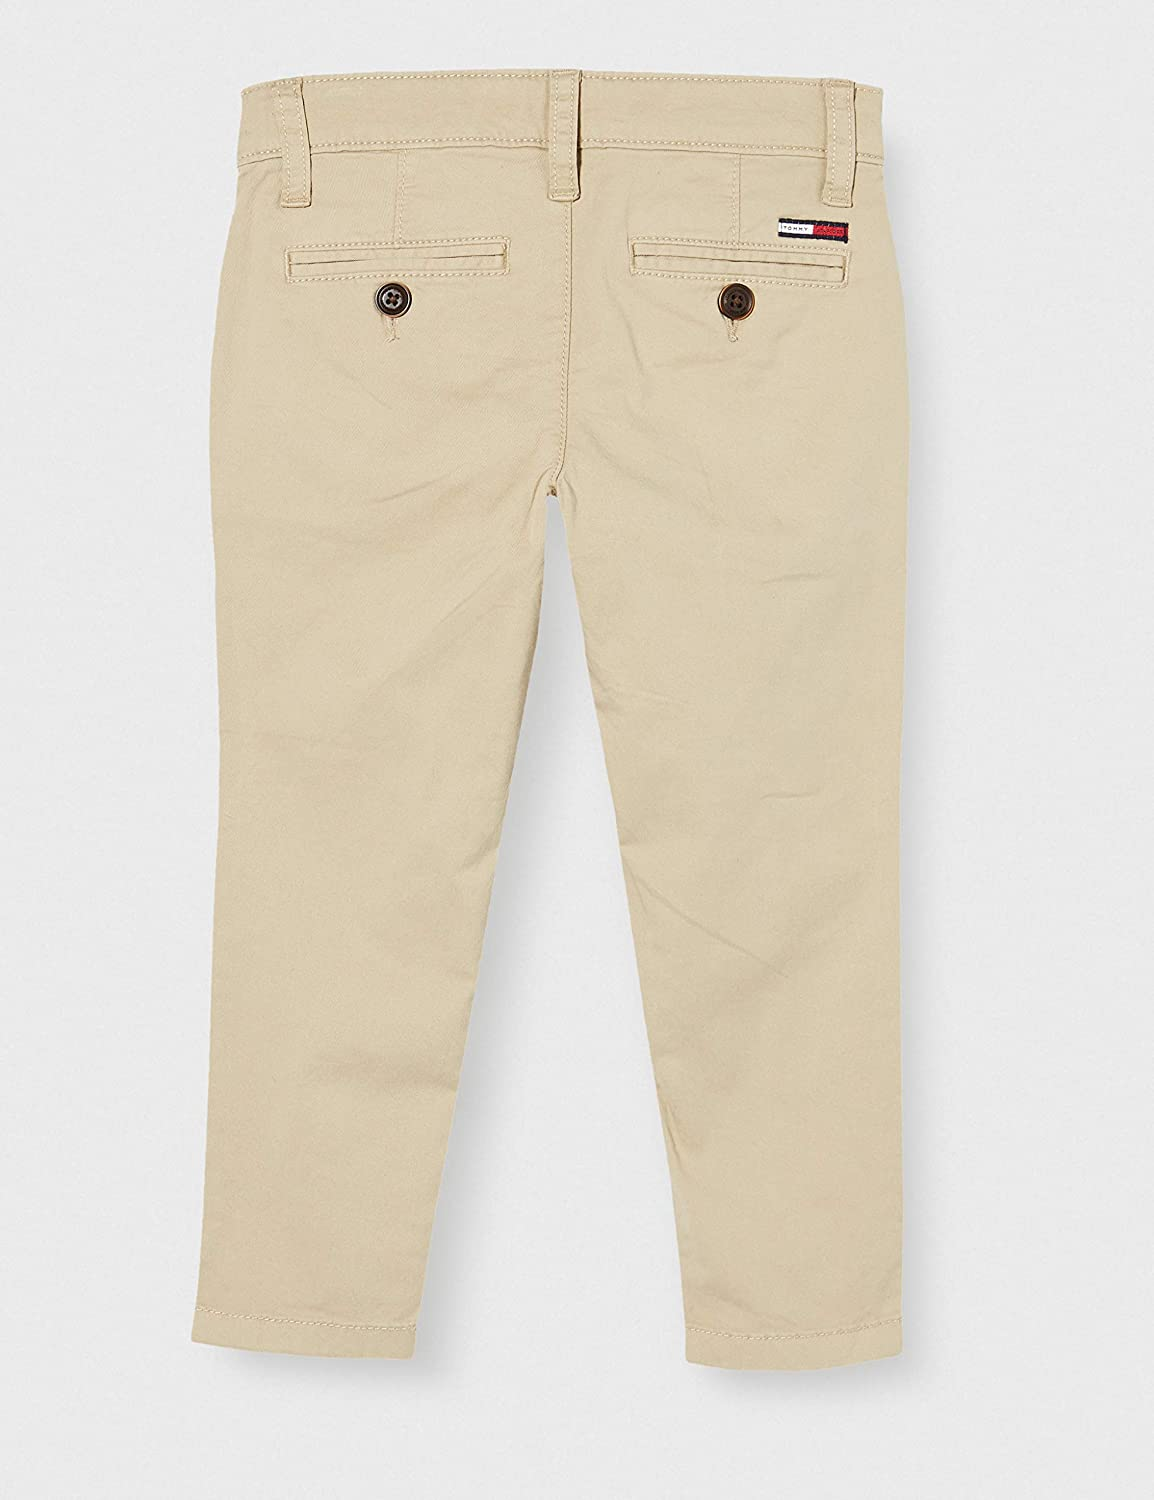 Tommy Hilfiger Essential Skinny Chino TH Flex Pantaloni Bambino